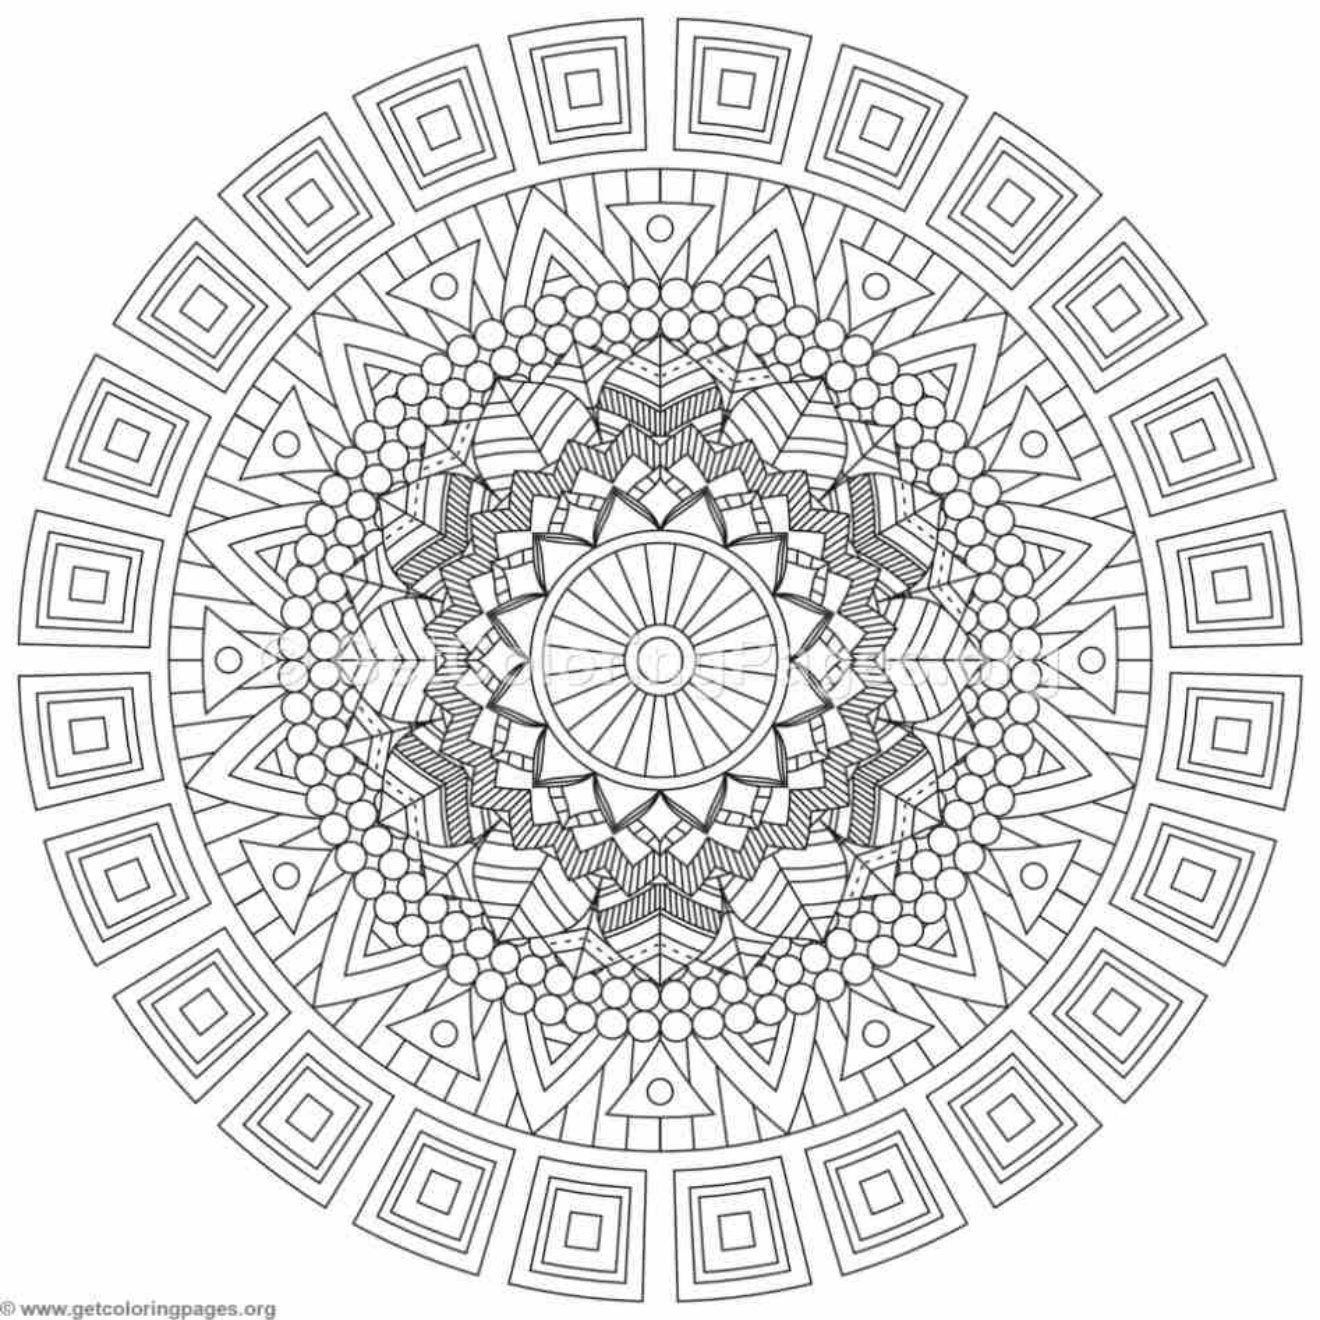 Tribal Mandala Coloring Pages 261 Mandala Coloring Pages Unicorn Coloring Pages Mandala Coloring